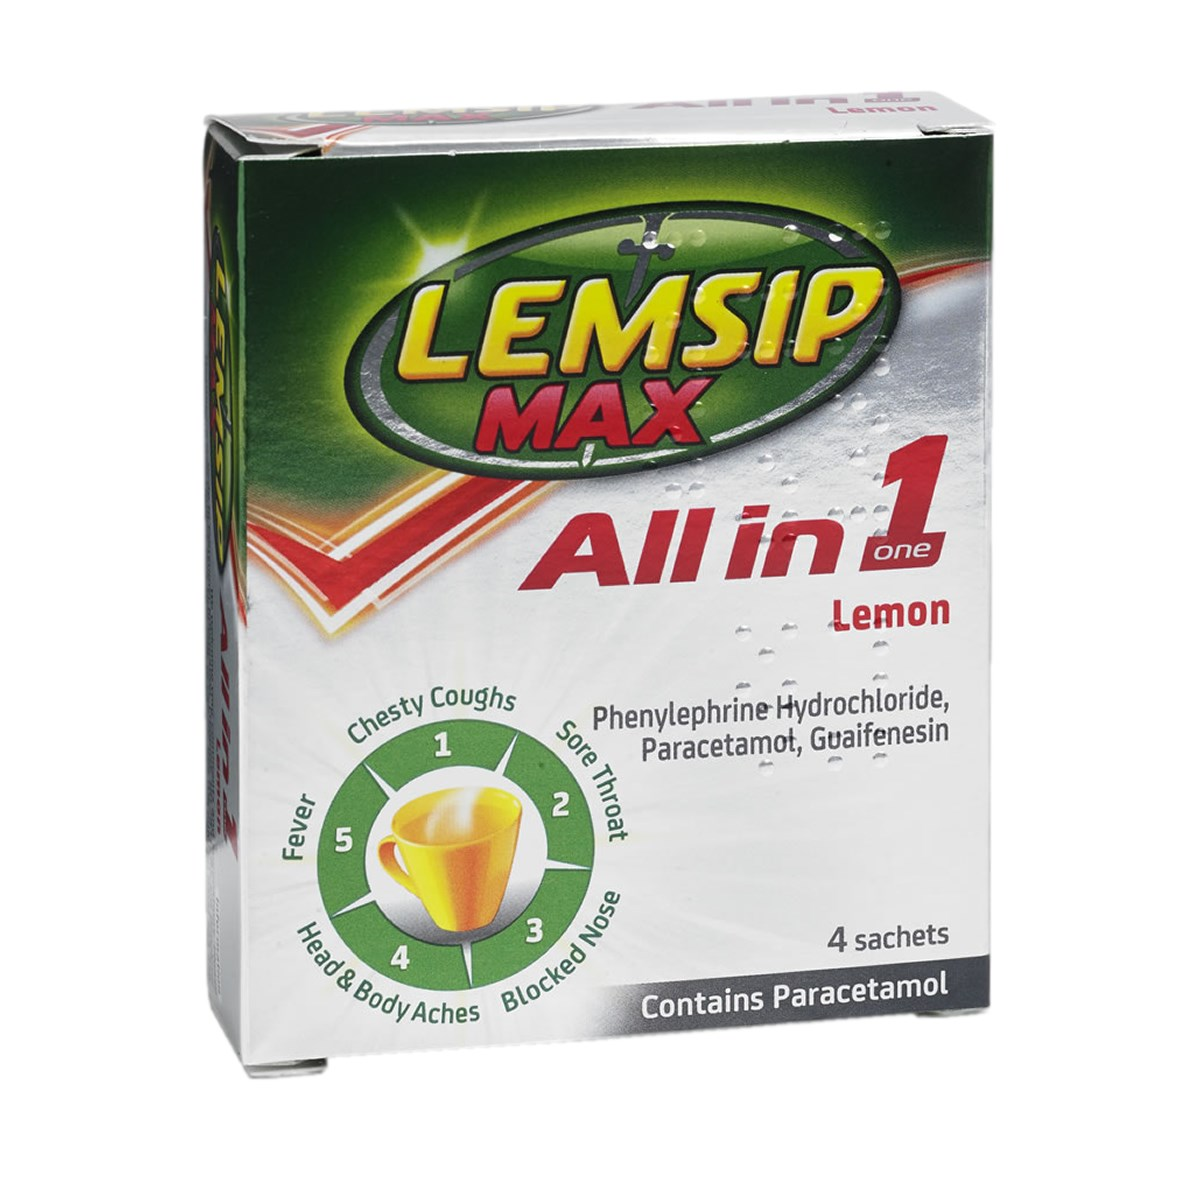 Lemsip Max All In One Lemon Sachets